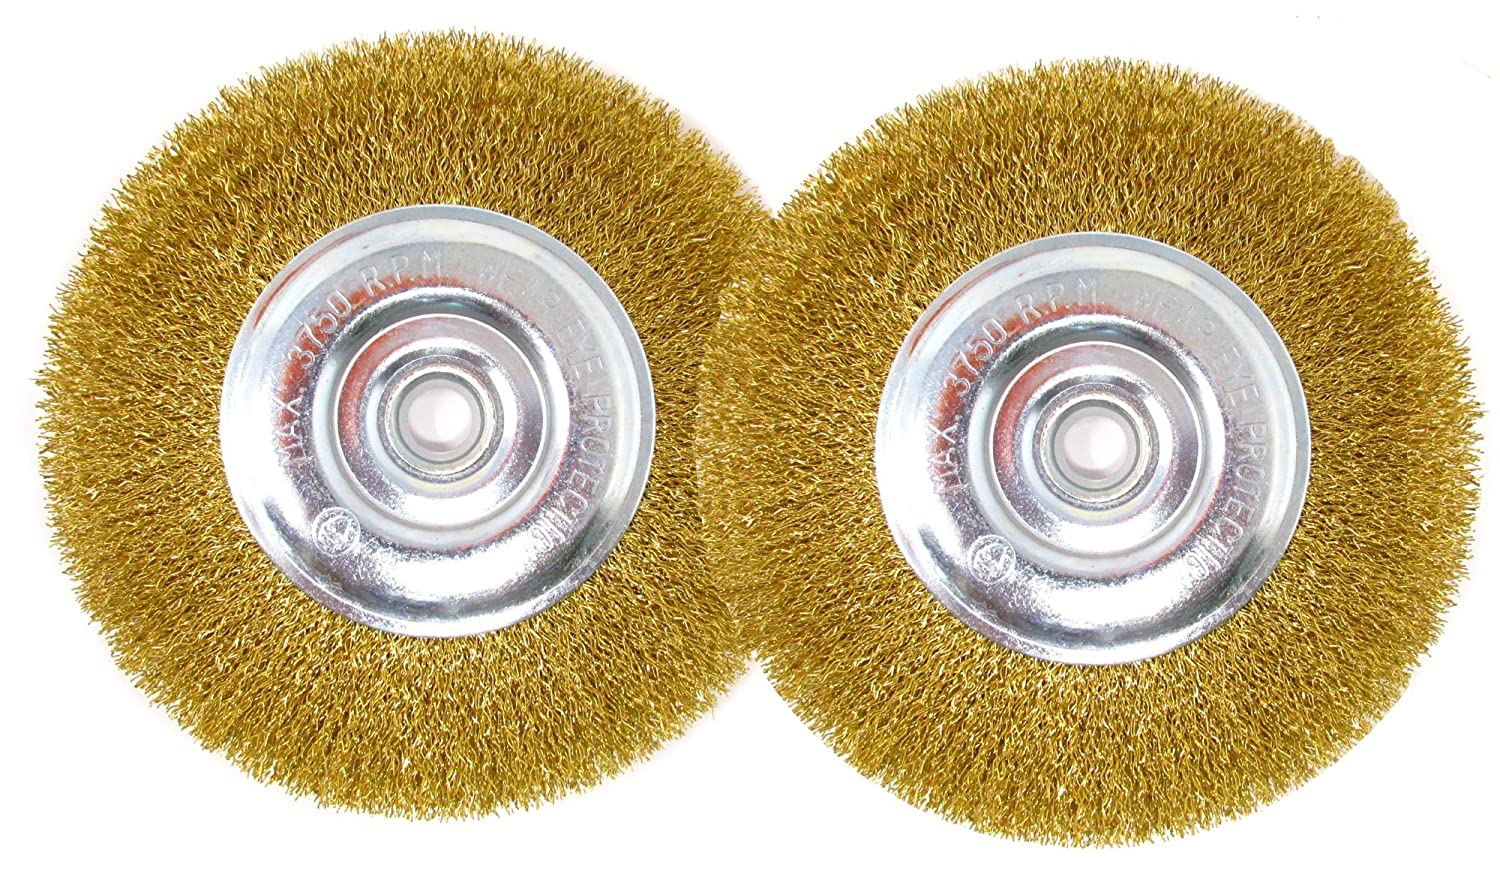 6 Inch Brass-Coated Wire Wheel Brush for Bench Grinder - Pack of 2 - Fine and Coarse LINE10 Tools